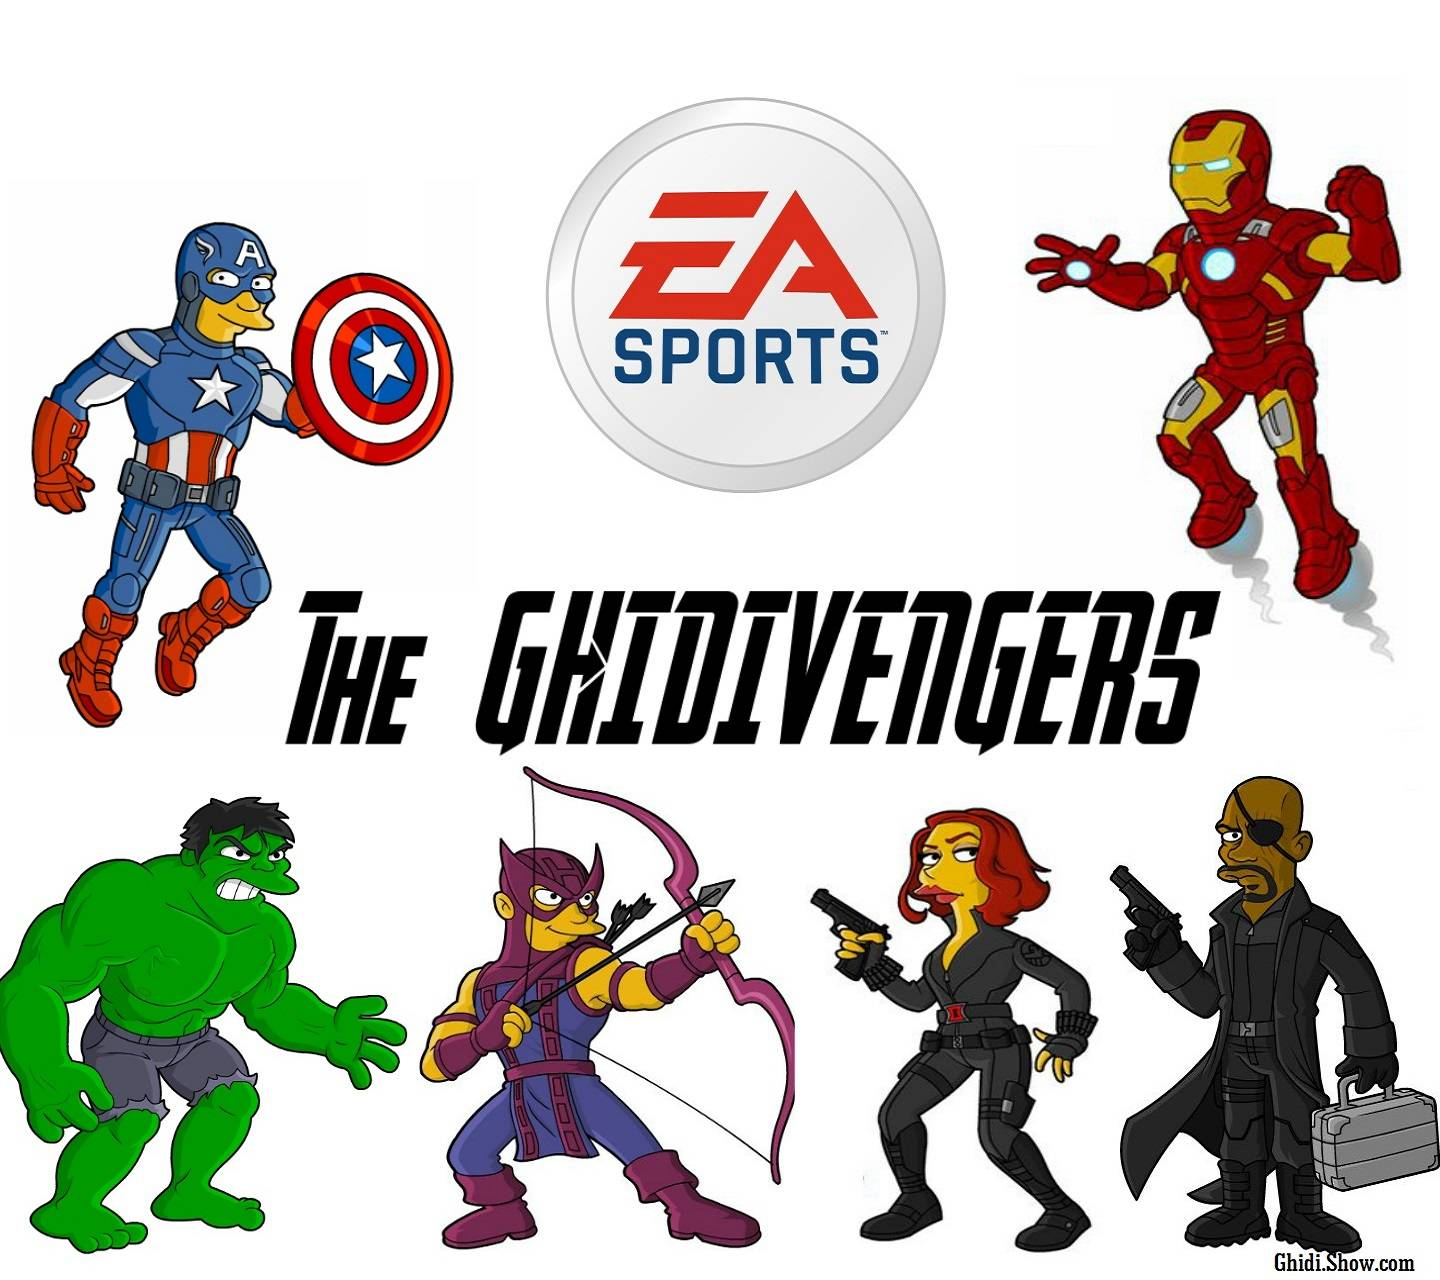 The Ghidivengers